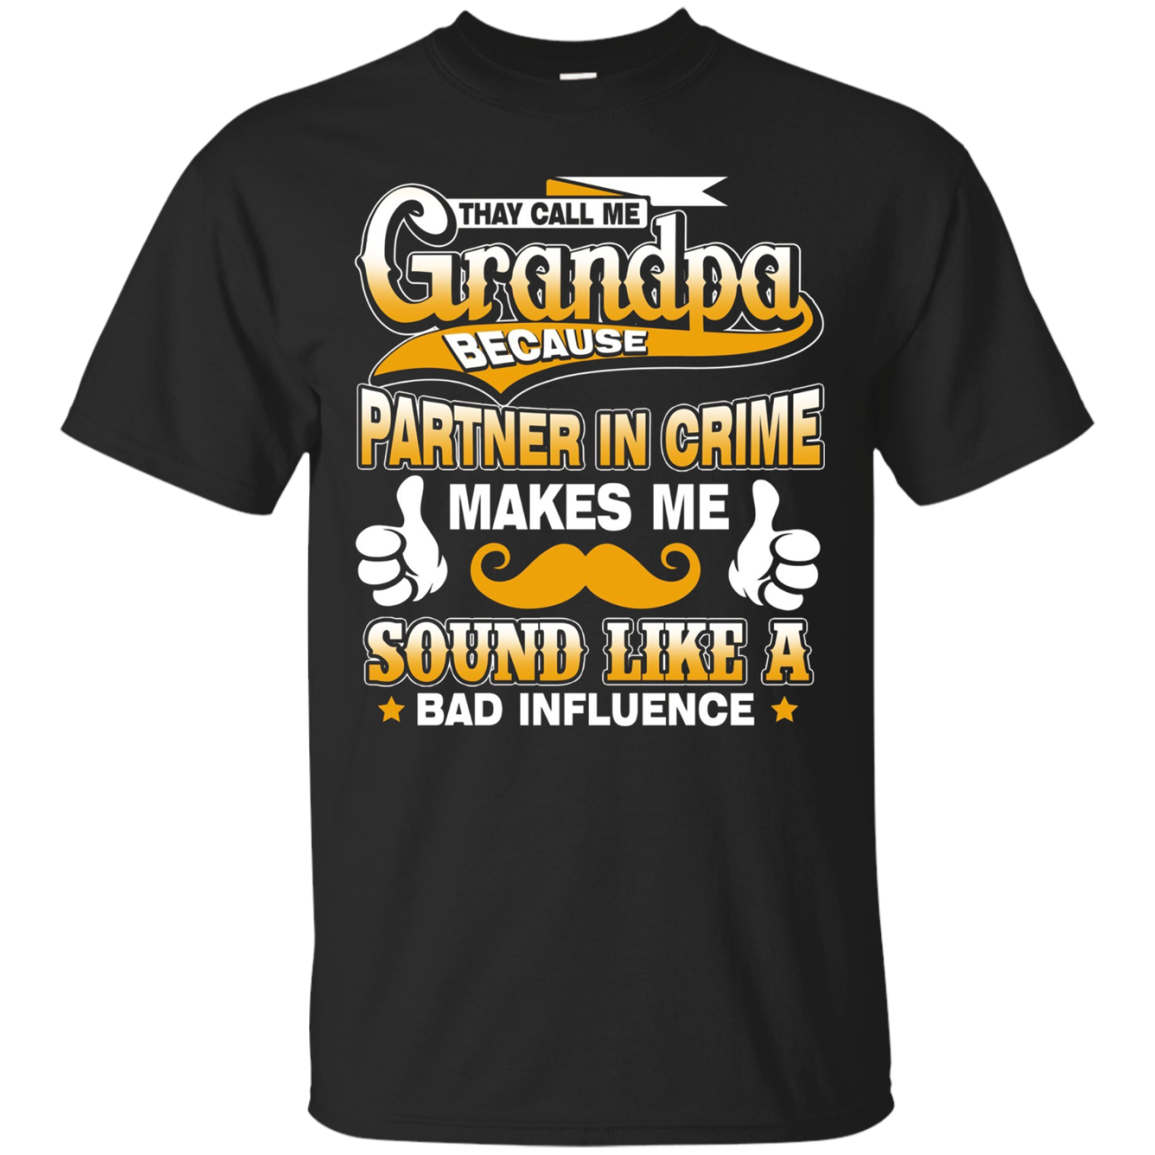 They Call Me Grandpa Because Partner In Crime T Shirt